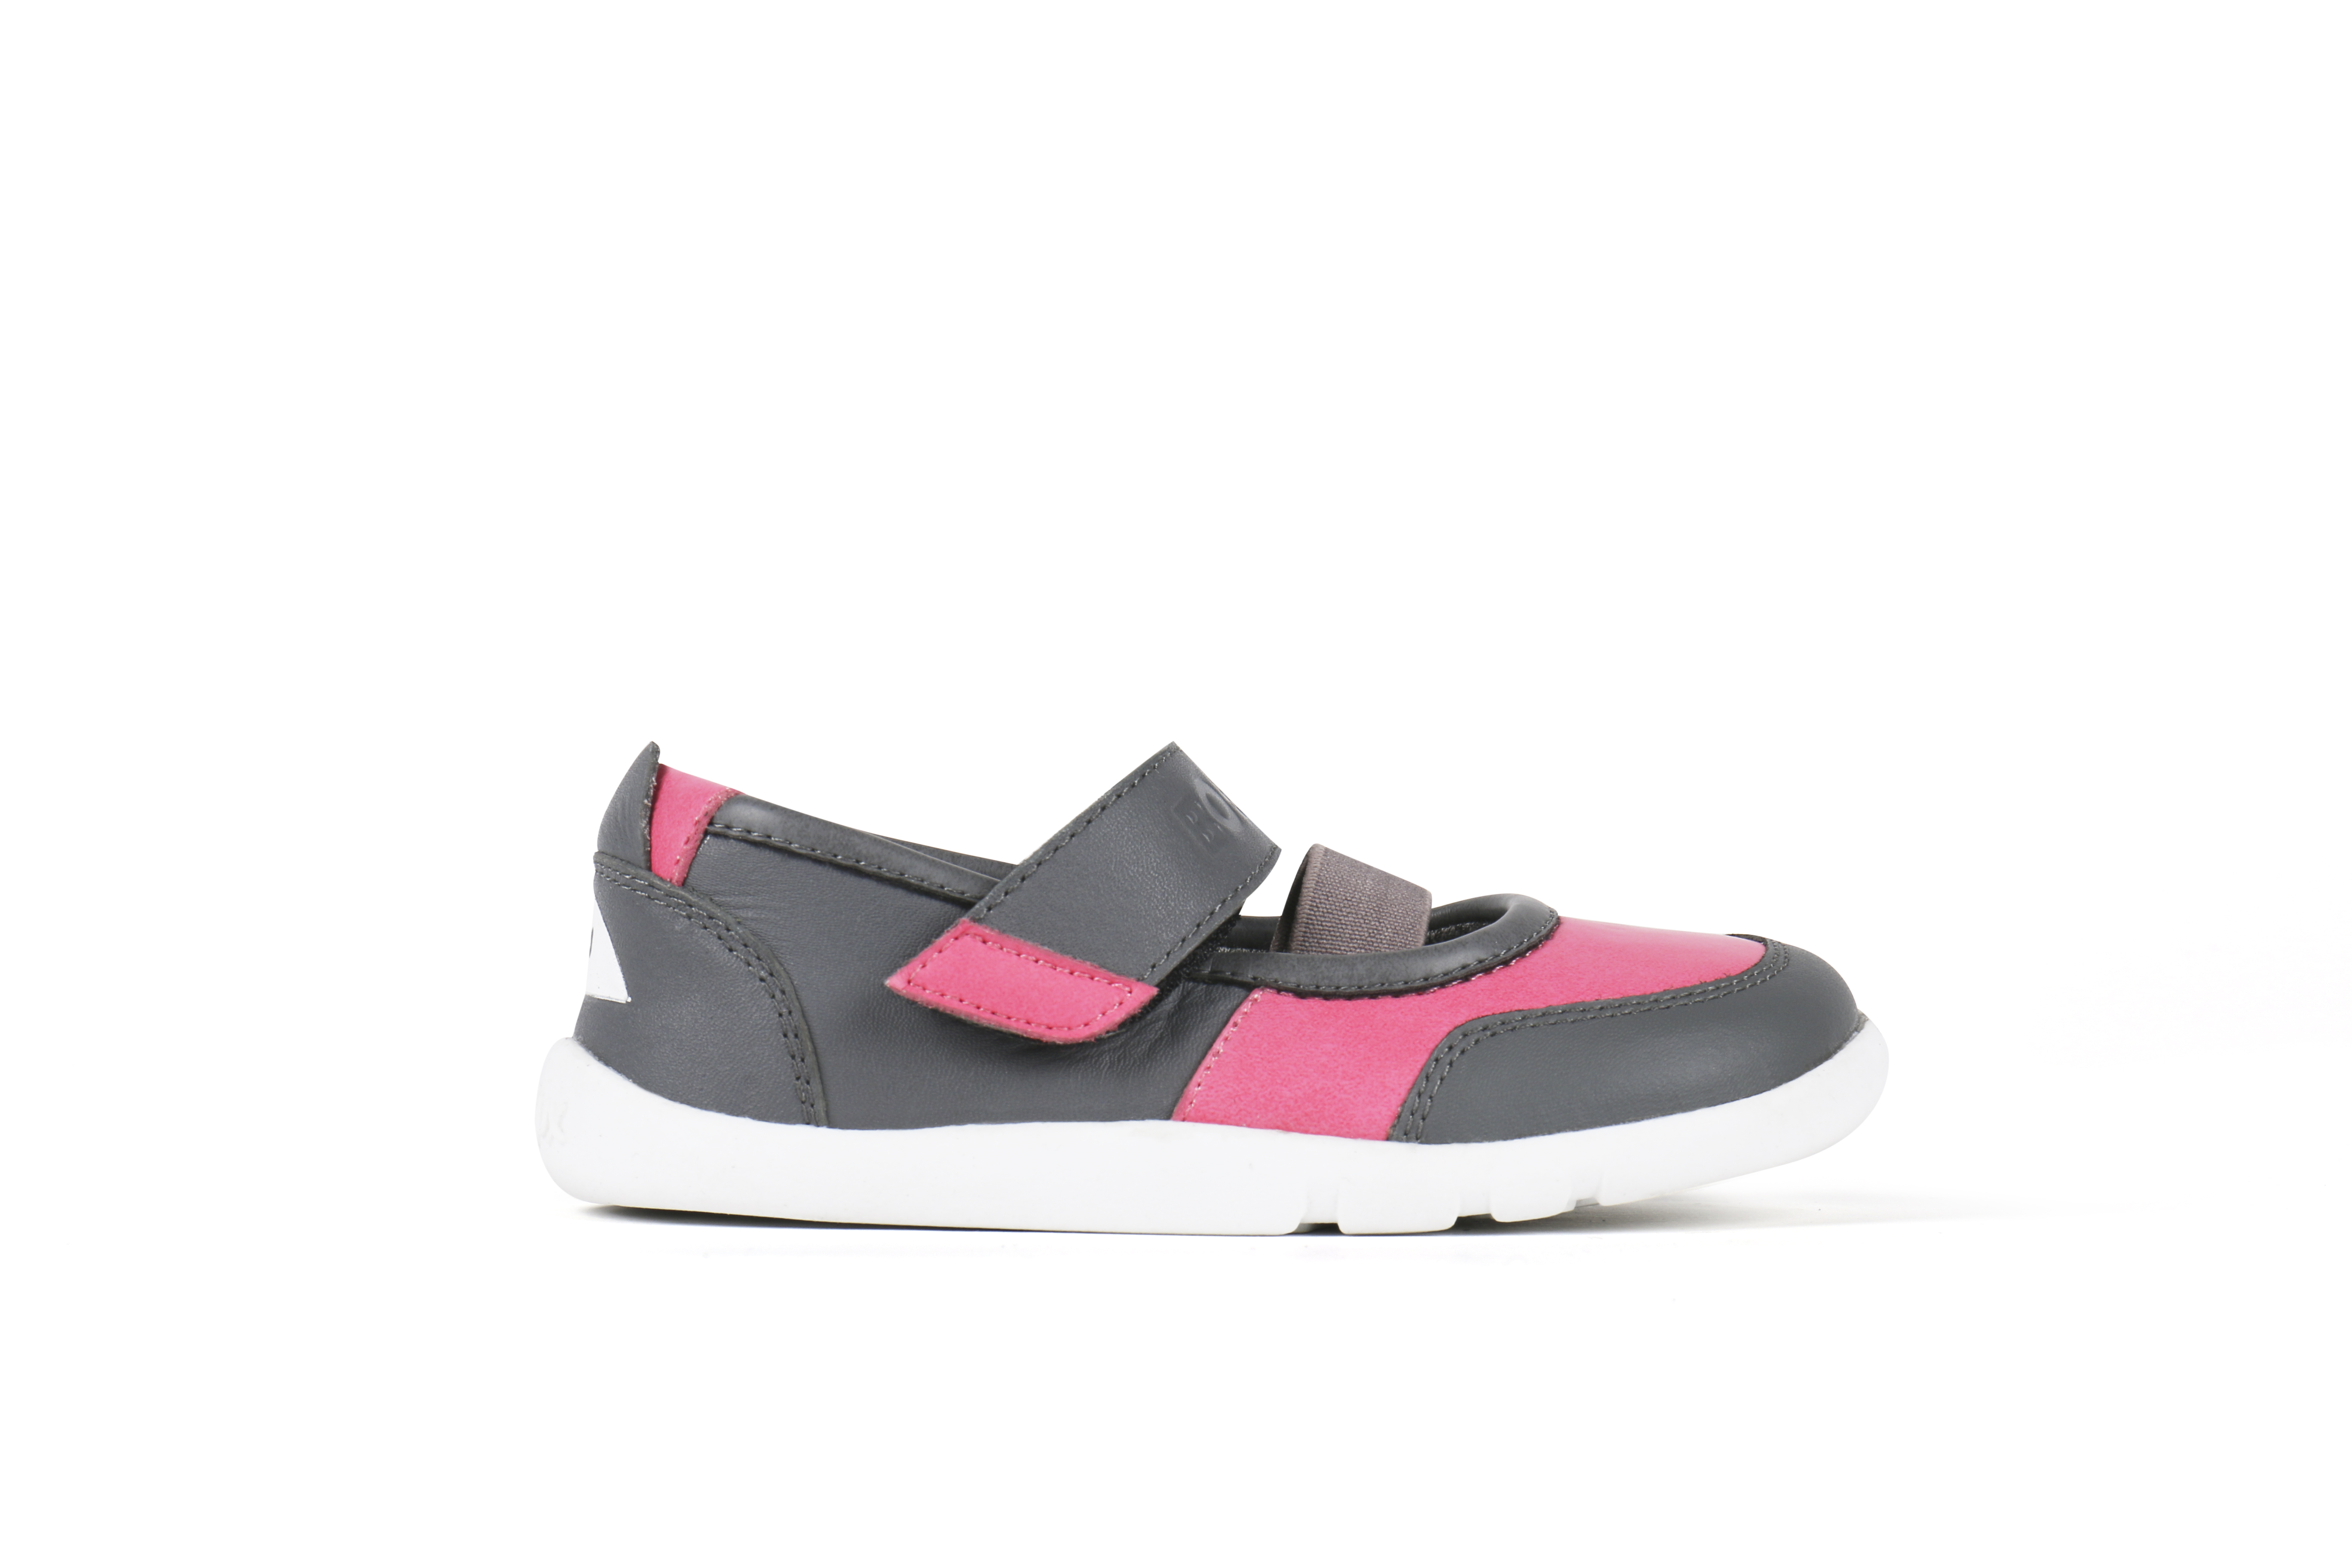 Last Pairs 20 Amp 22 Eur Toddler Girls Shoes Nz S